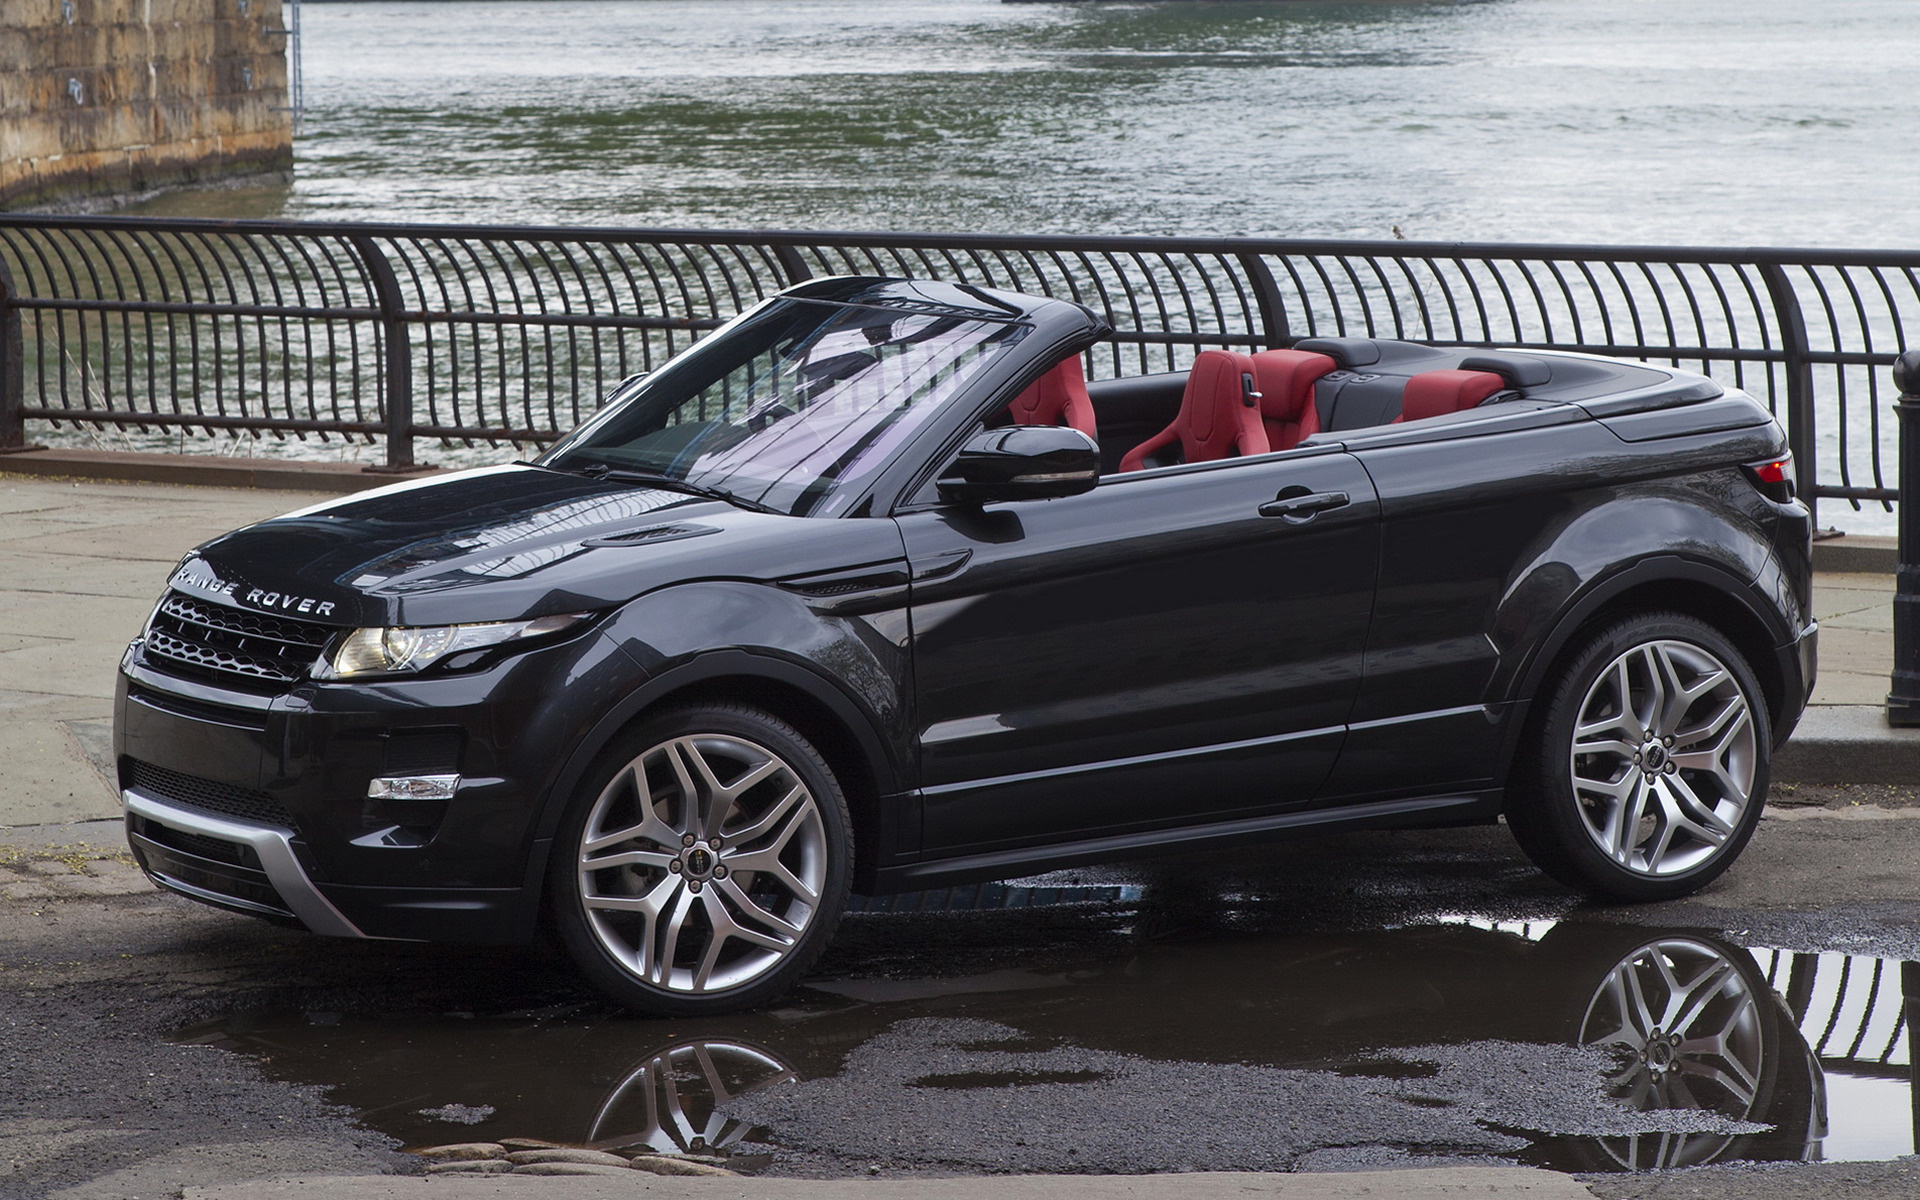 https://www.carpixel.net/w/95f554fb25a34f5fe5bef69da968973a/range-rover-evoque-convertible-concept-car-wallpaper-36920.jpg